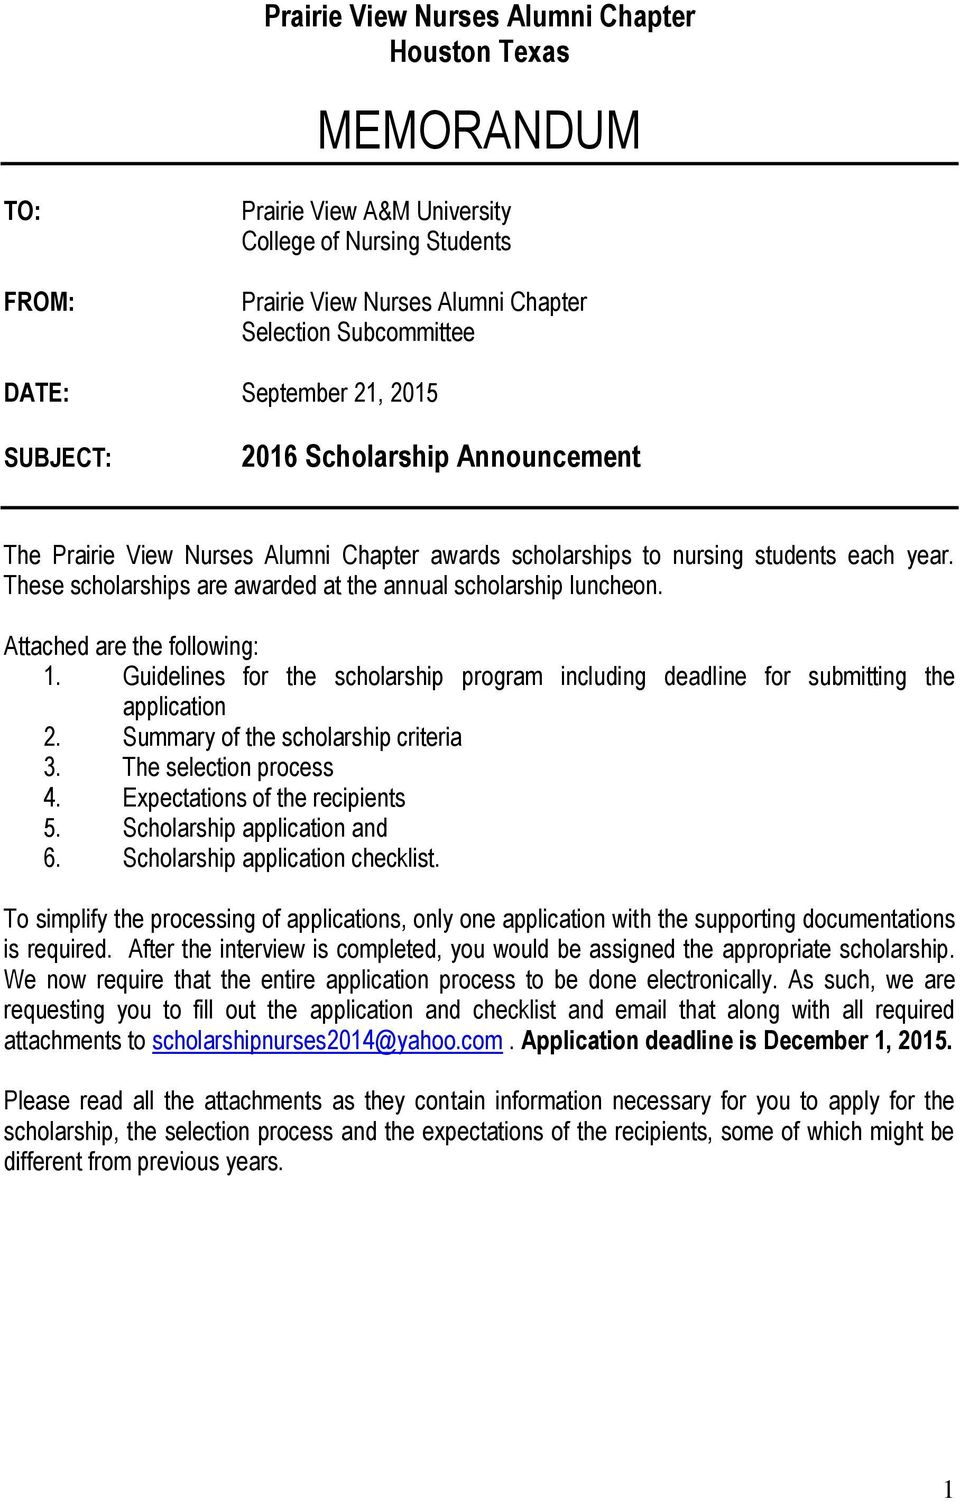 Guidelines for the scholarship program including deadline for submitting the application 2. Summary of the scholarship criteria 3. The selection process 4. Expectations of the recipients 5.